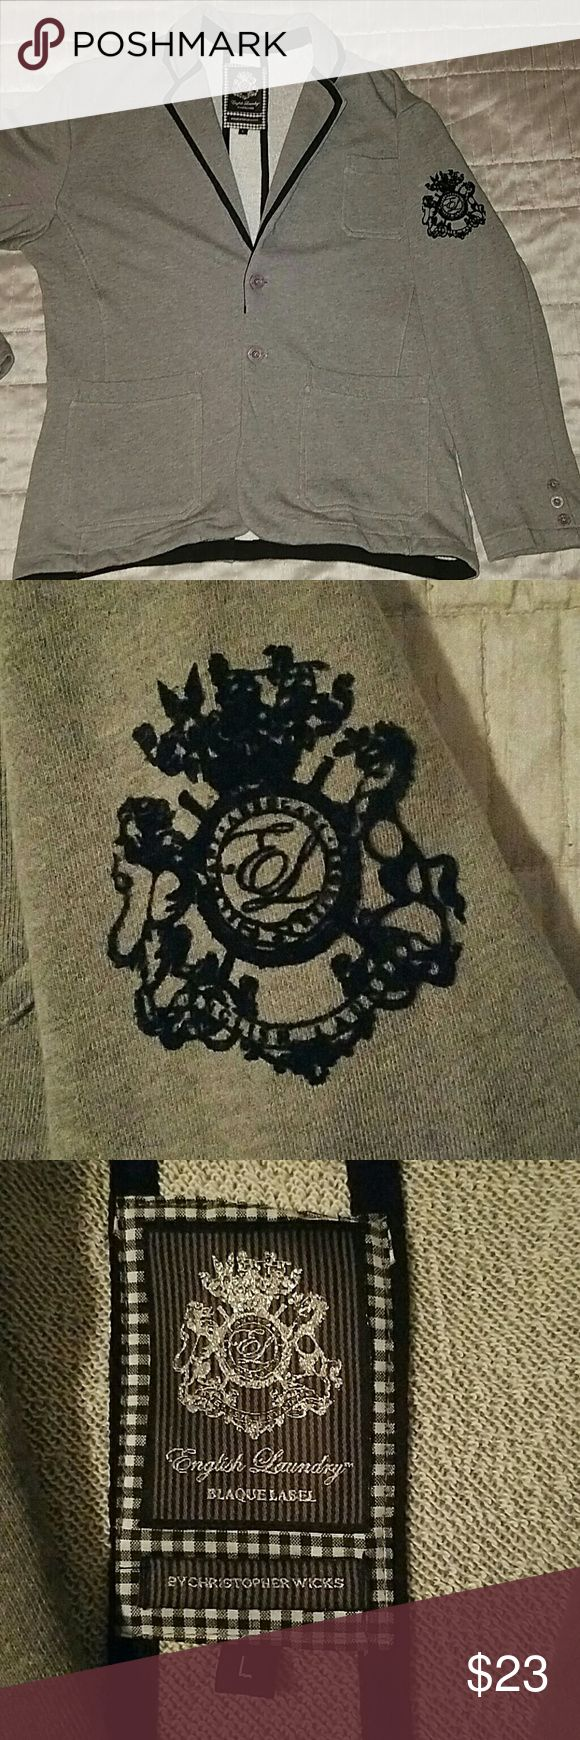 English Laundry Blaque Label Casual Jacket English Laundry Blaque Label casual jacket- cotton material.  Designed by Christopher Wicks.    Give your wardrobe a Collegiate appeal. Jacket has never been worn. English Laundry Jackets & Coats Lightweight & Shirt Jackets